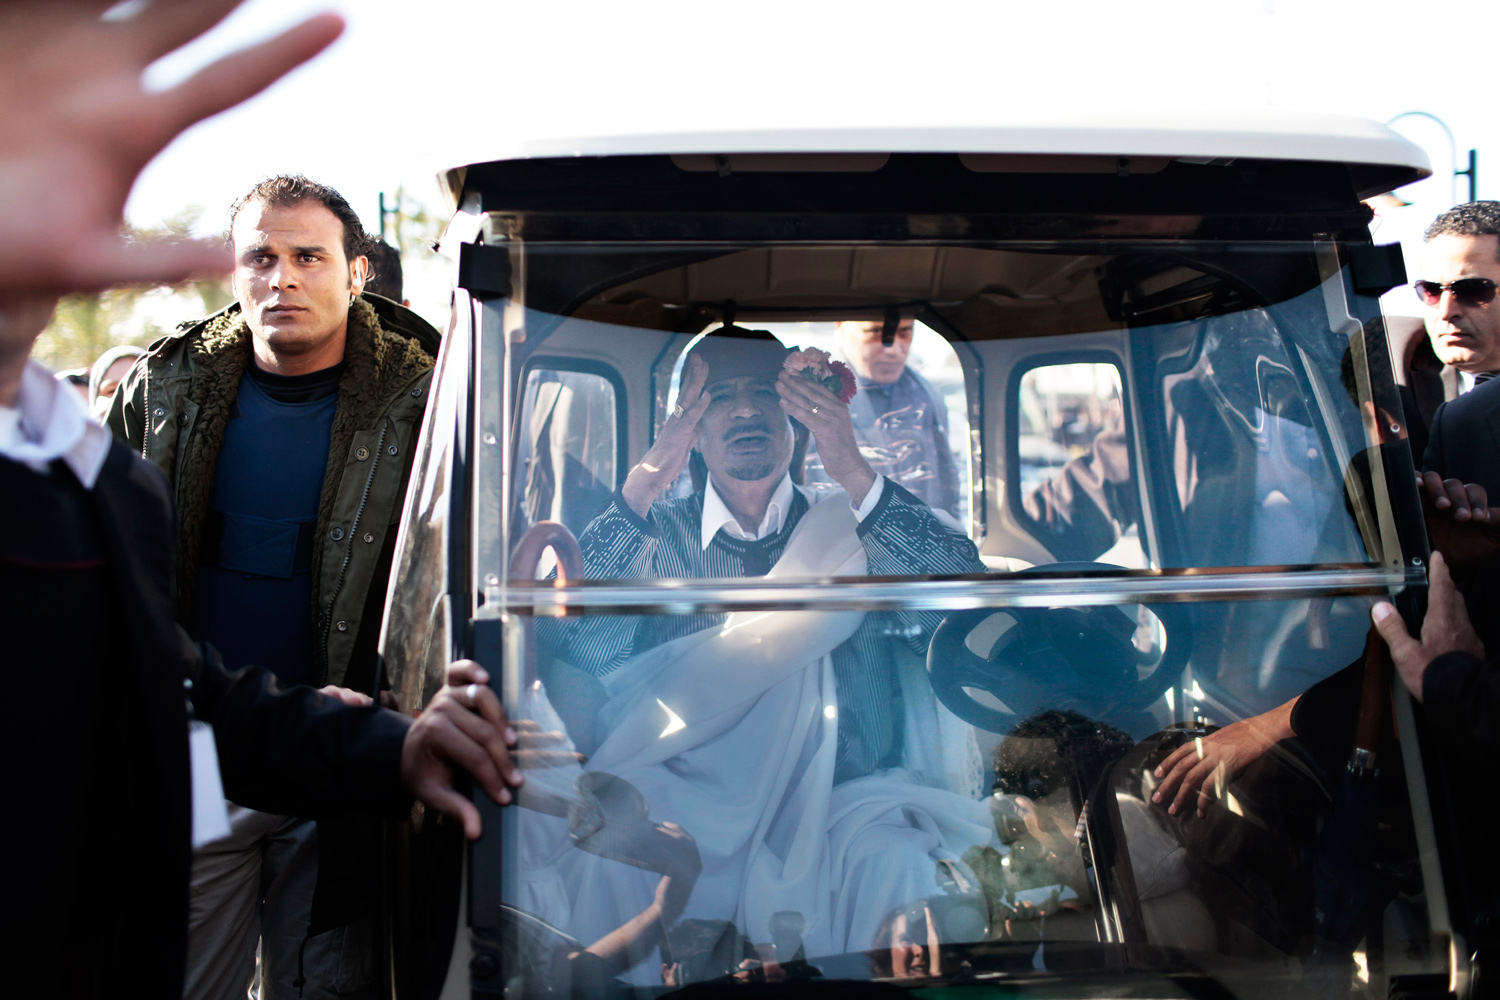 March 2, 2011. Libyan leader Colonel Muammar Gaddafi salutes to journalists from inside a custom-made golf-cart as he leaves the Rixos Al Nasr Tripoli Hotel where he presided over the Libyan People General Congress.